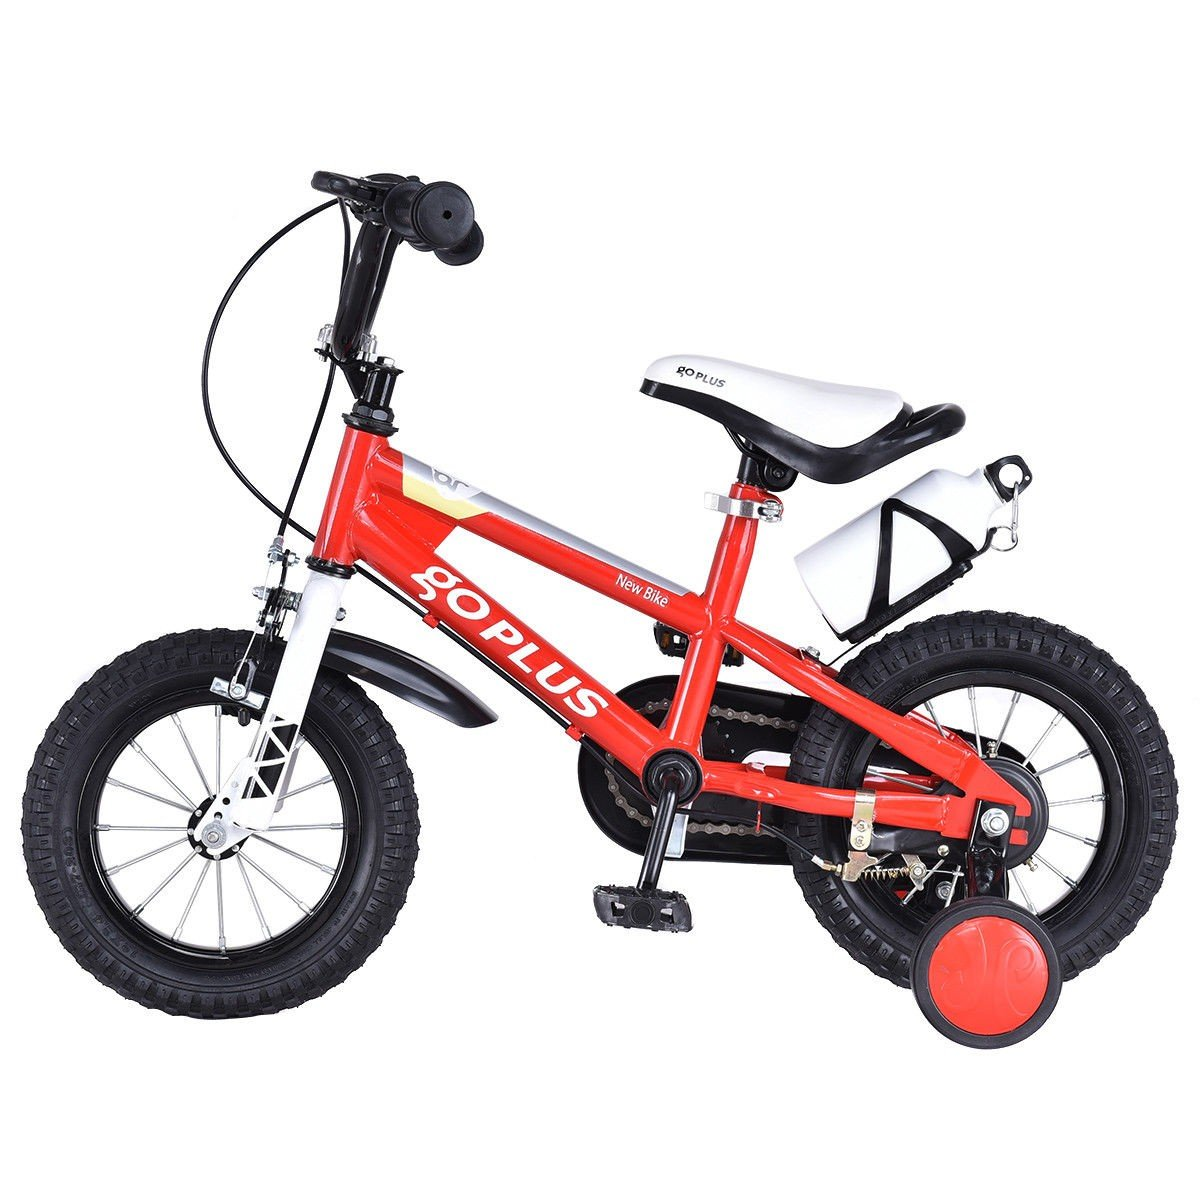 choice 12'' Freestyle Children Boys & Girls Bicycle w/Training Wheels Products (Red) by choice